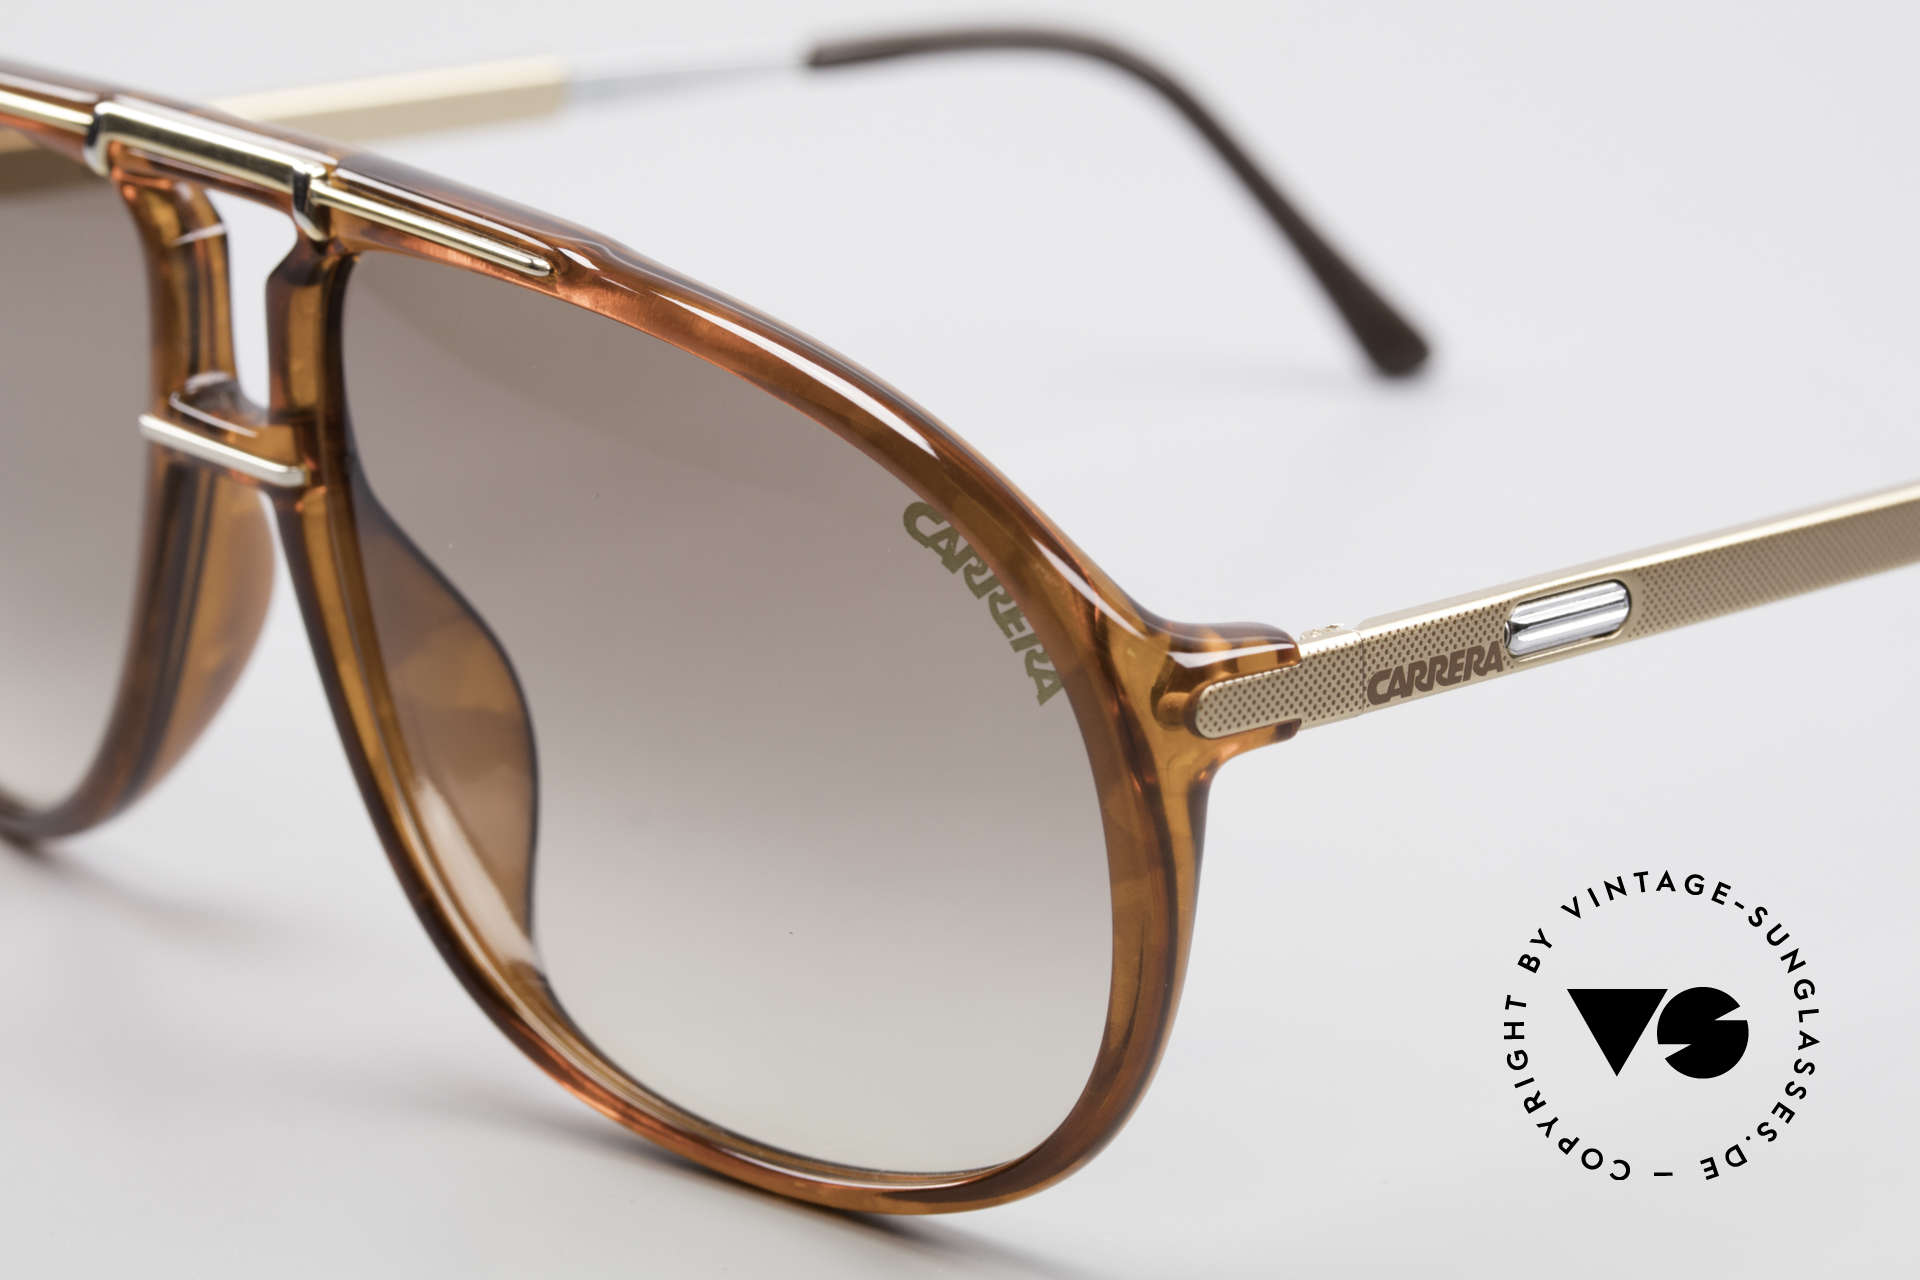 Carrera 5323 Adjustable Temples Vario 80's, great Vario System for a variable temple length, Made for Men and Women